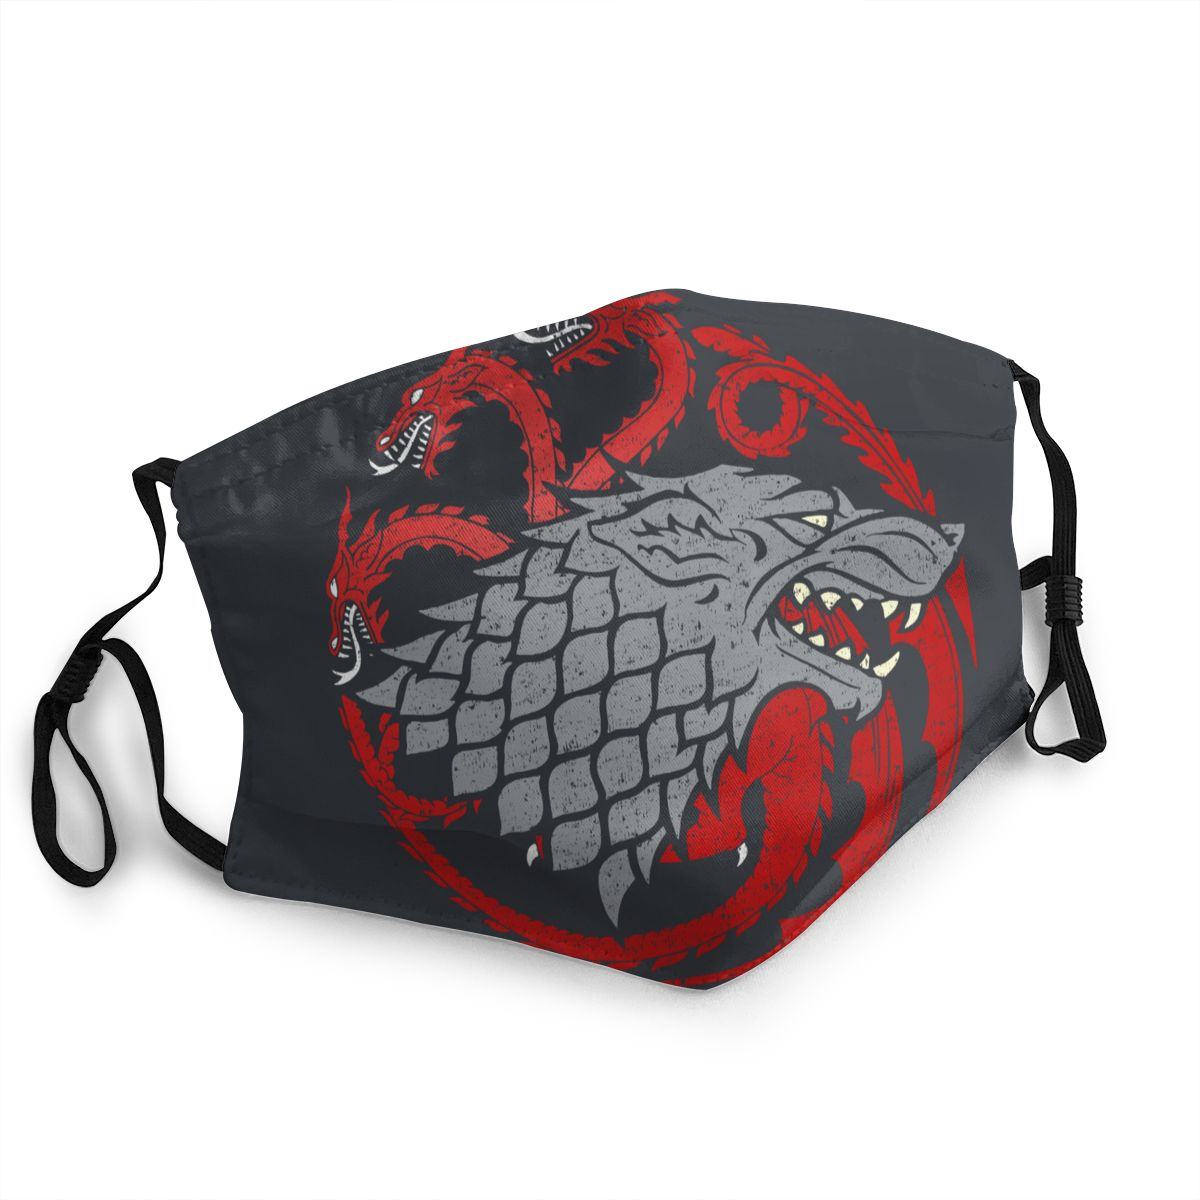 House Stark Targaryen Reusable Mouth Face Mask Game Of Thrones Anti Haze Dust Protection Cover Respirator Mouth Muffle